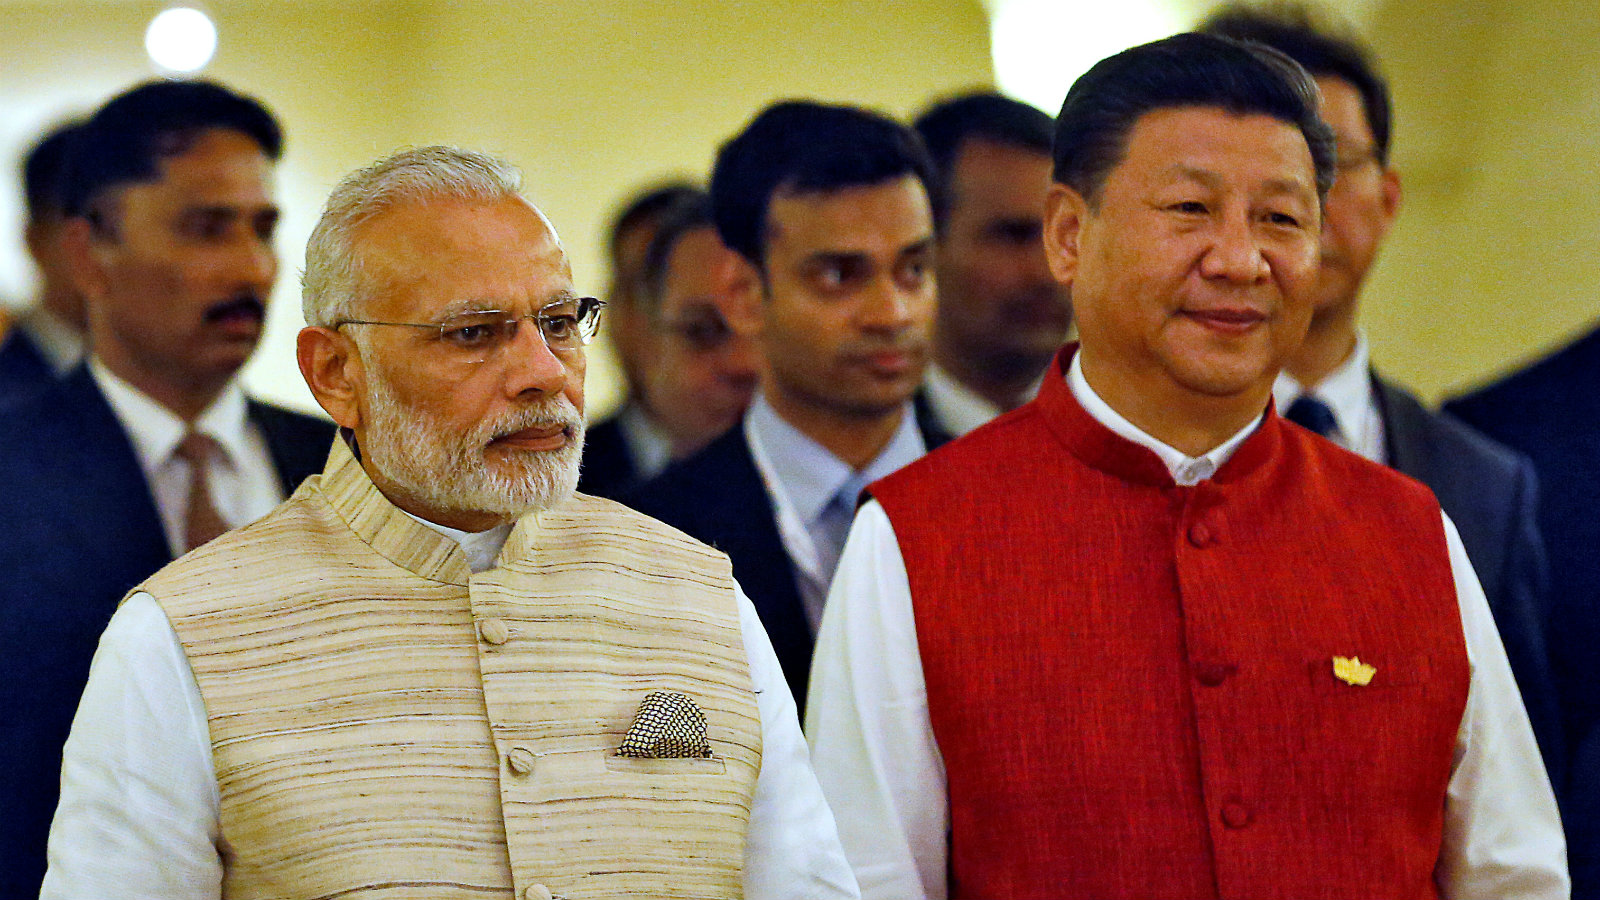 Indian Prime Minister Narendra Modi (L) and Chinese President Xi Jinping arrive for a photo opportunity ahead of BRICS (Brazil, Russia, India, China and South Africa) Summit in Benaulim, in the western state of Goa, India, October 15, 2016.